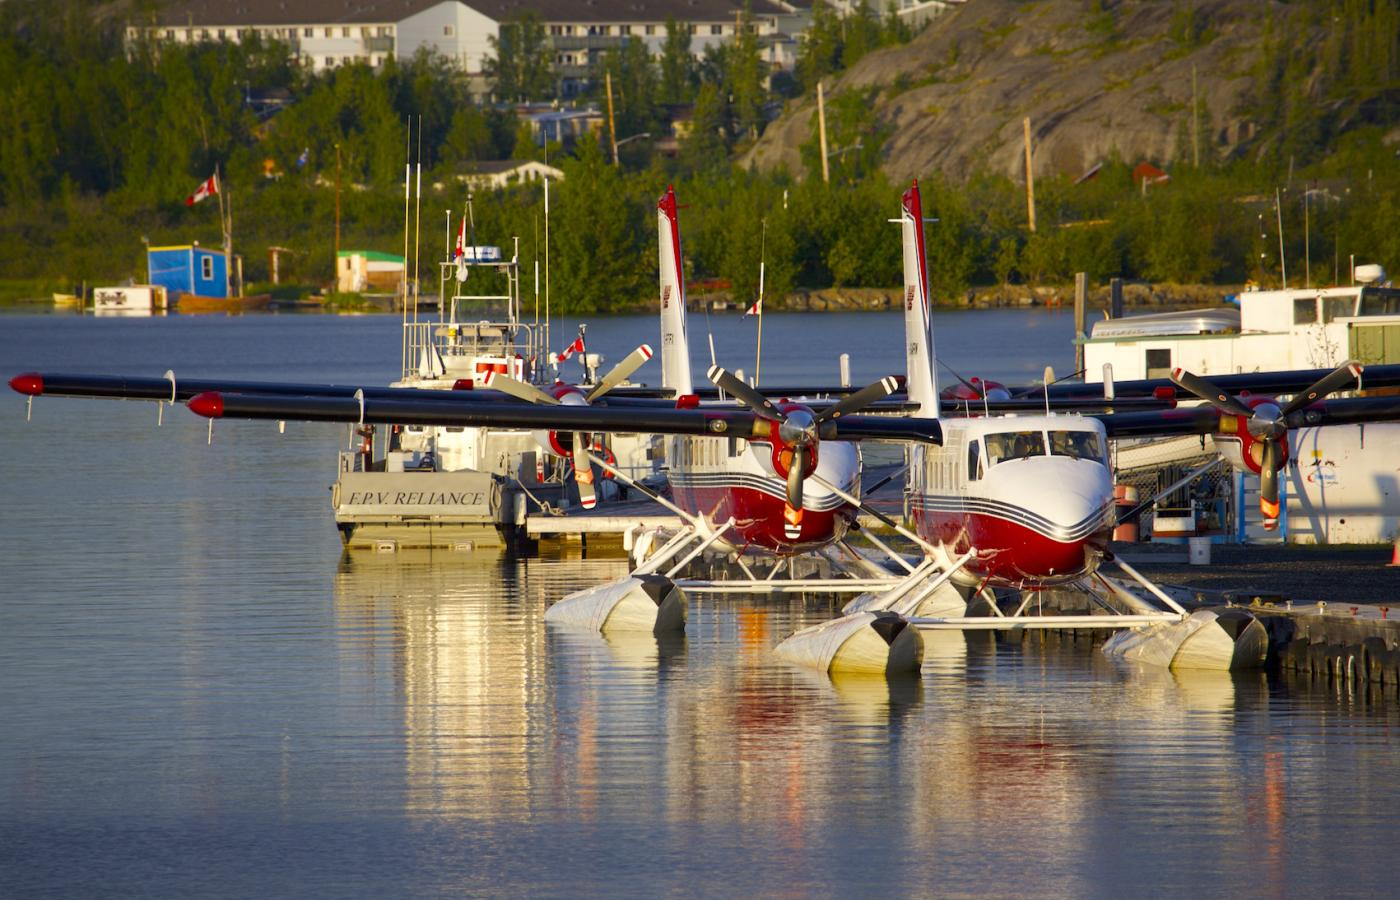 Floatplanes in Old Town in Yellowknife, Northwest Territories